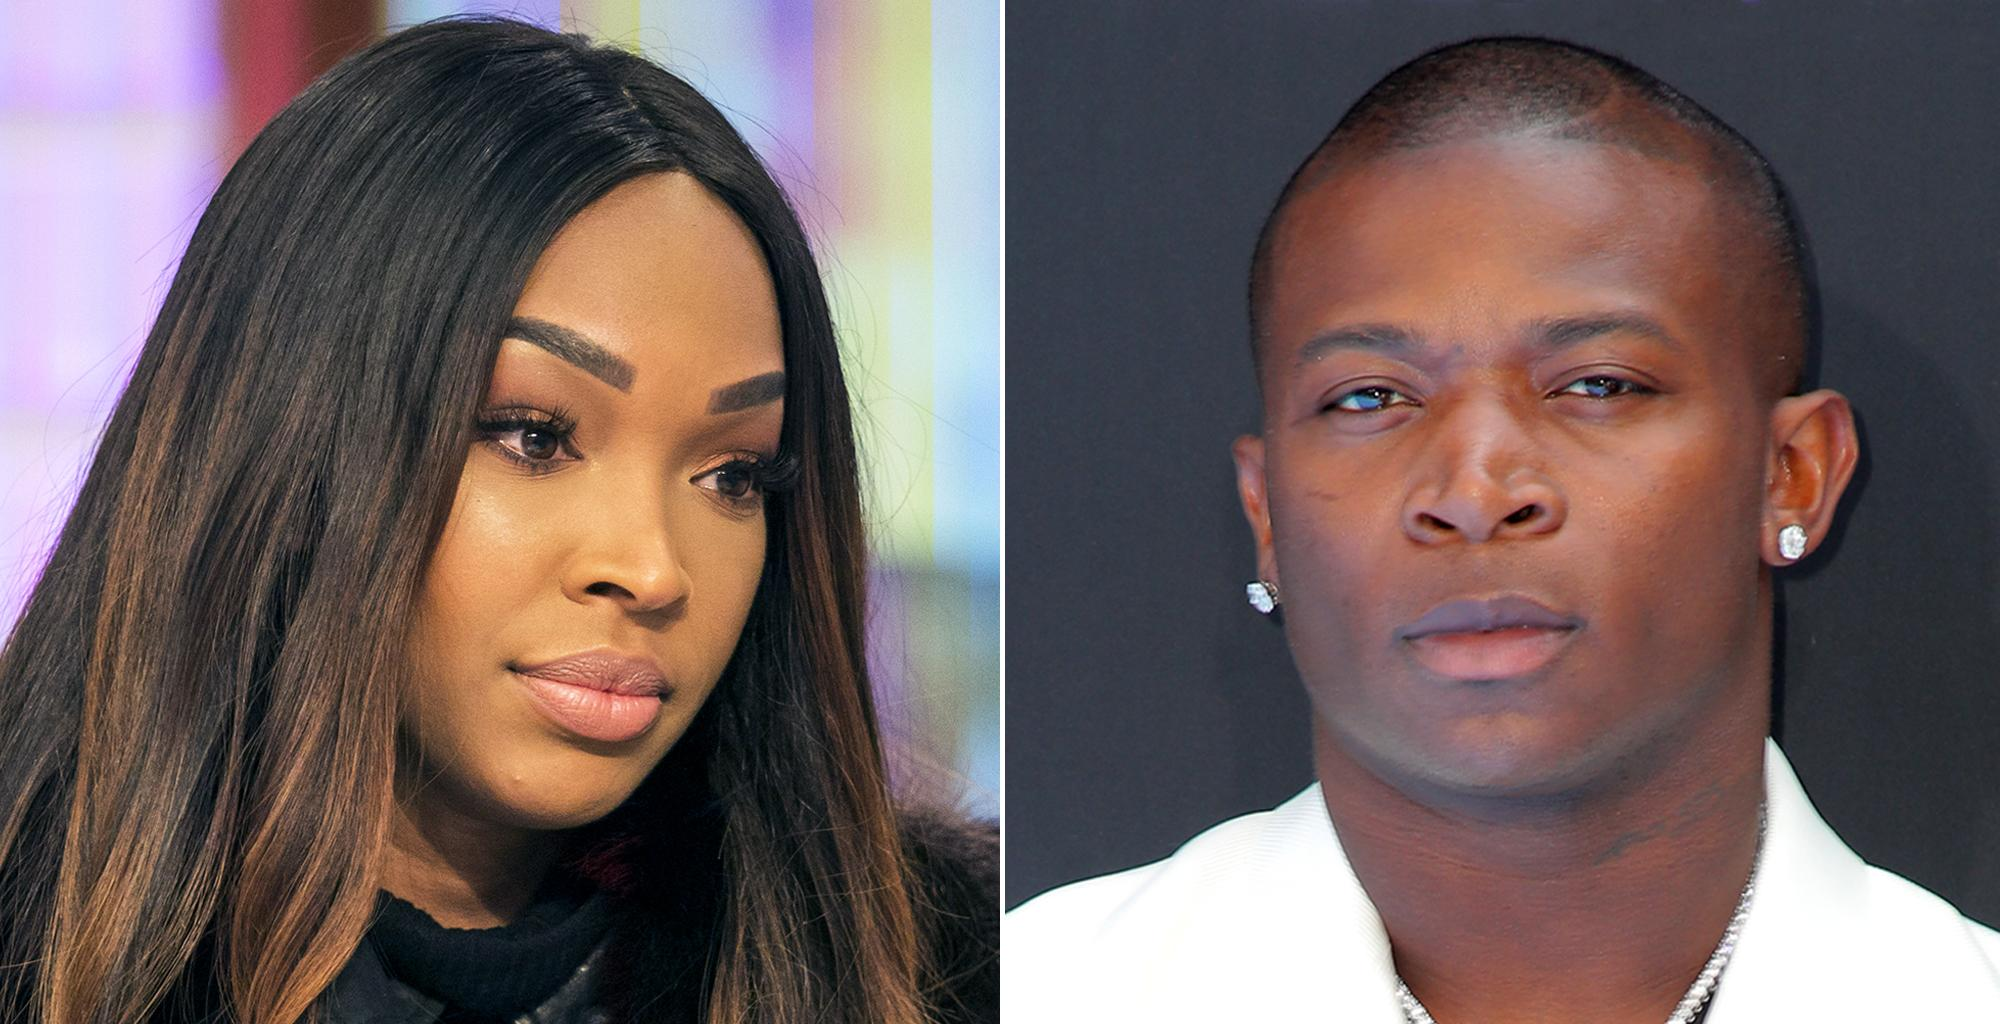 Malika Haqq Finally Reveals Her Baby Daddy Is O.T. Genasis And Delivers Touching Speech At Her Baby Shower